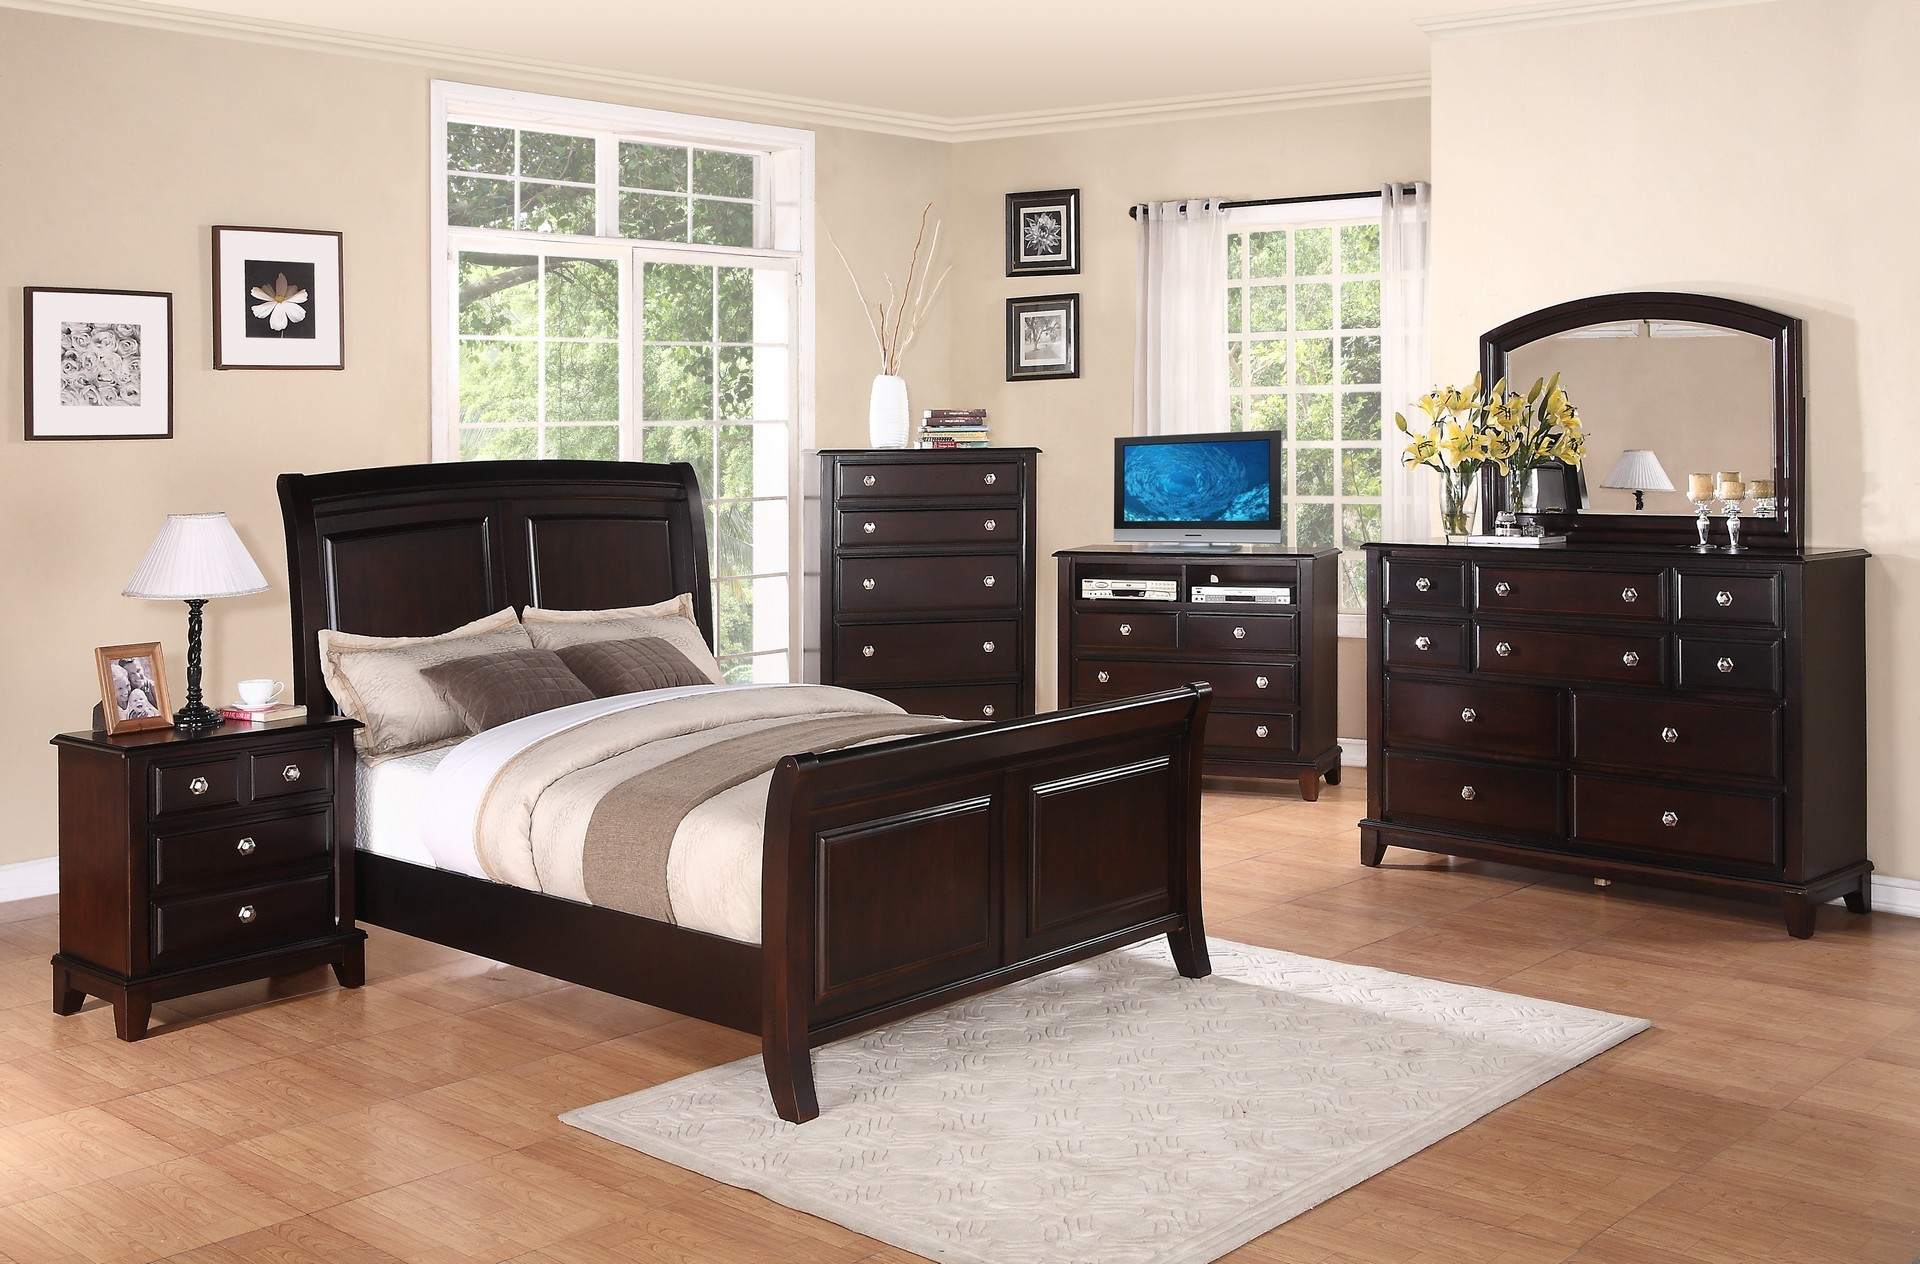 g9800a sleigh bedroom set in cappuccino solid wood